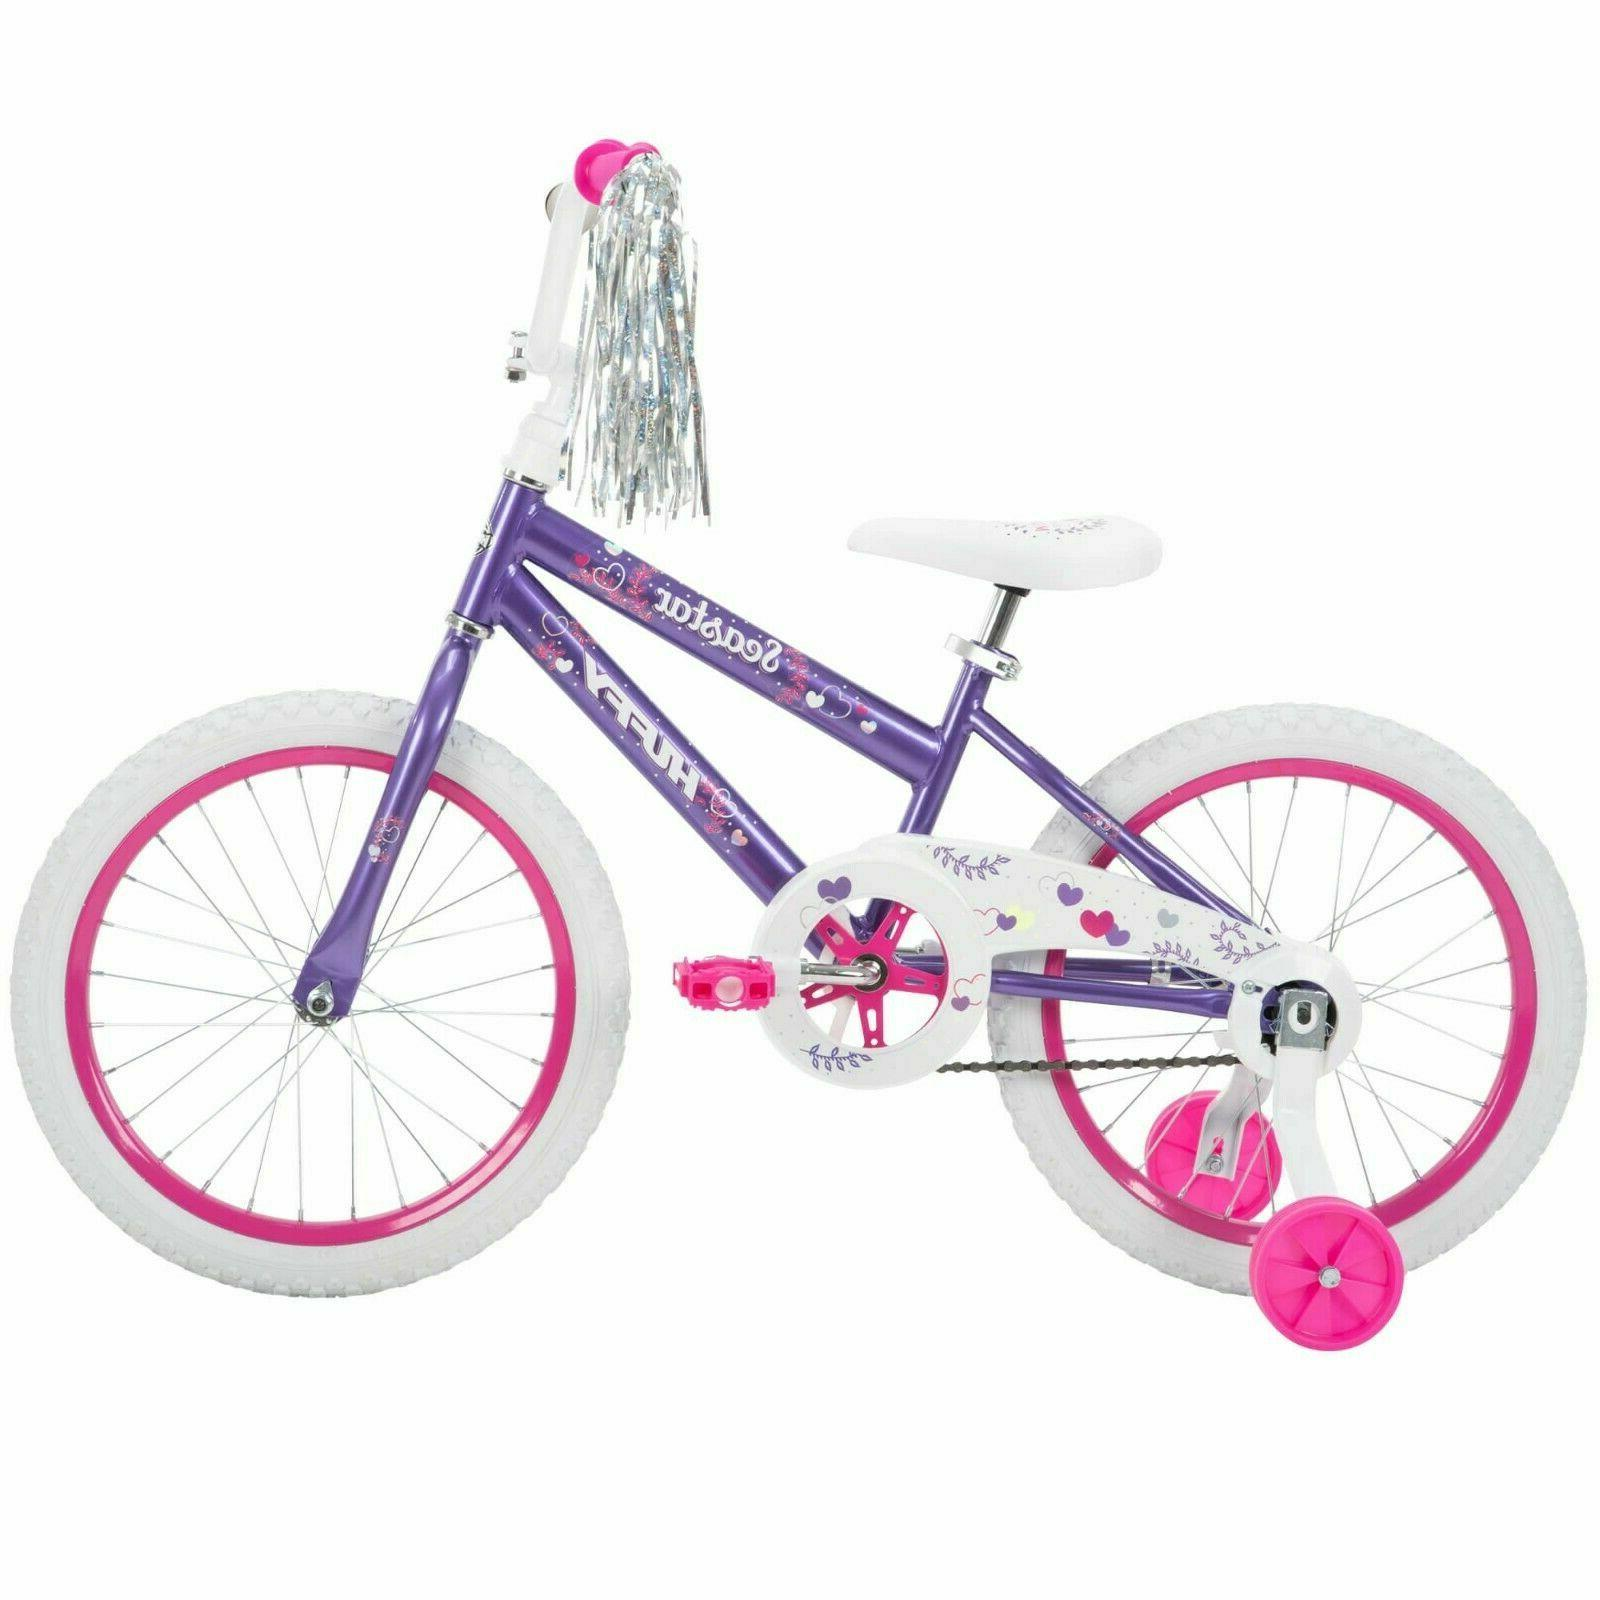 new 18 inch sea star girls bike